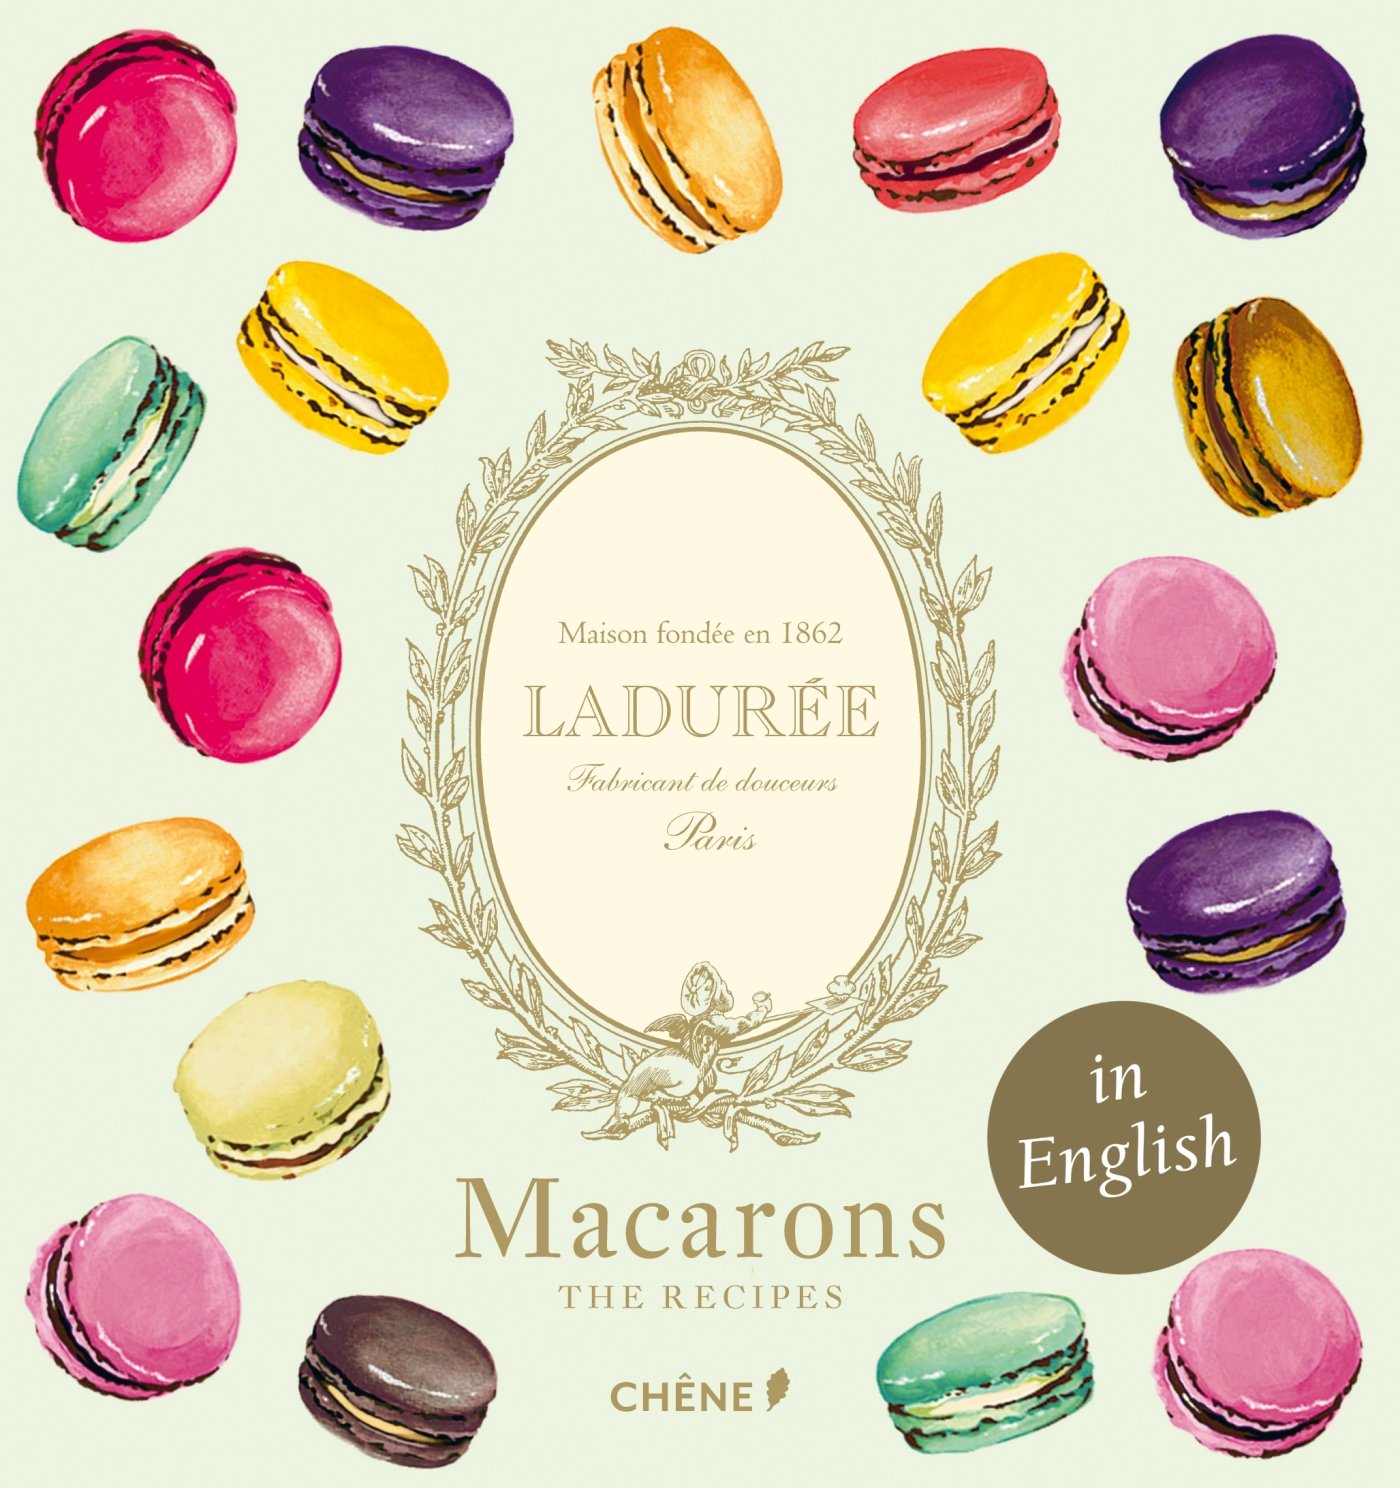 Ladurée Macarons (Laduree): Vincent Lemains, Antonin Bonnet